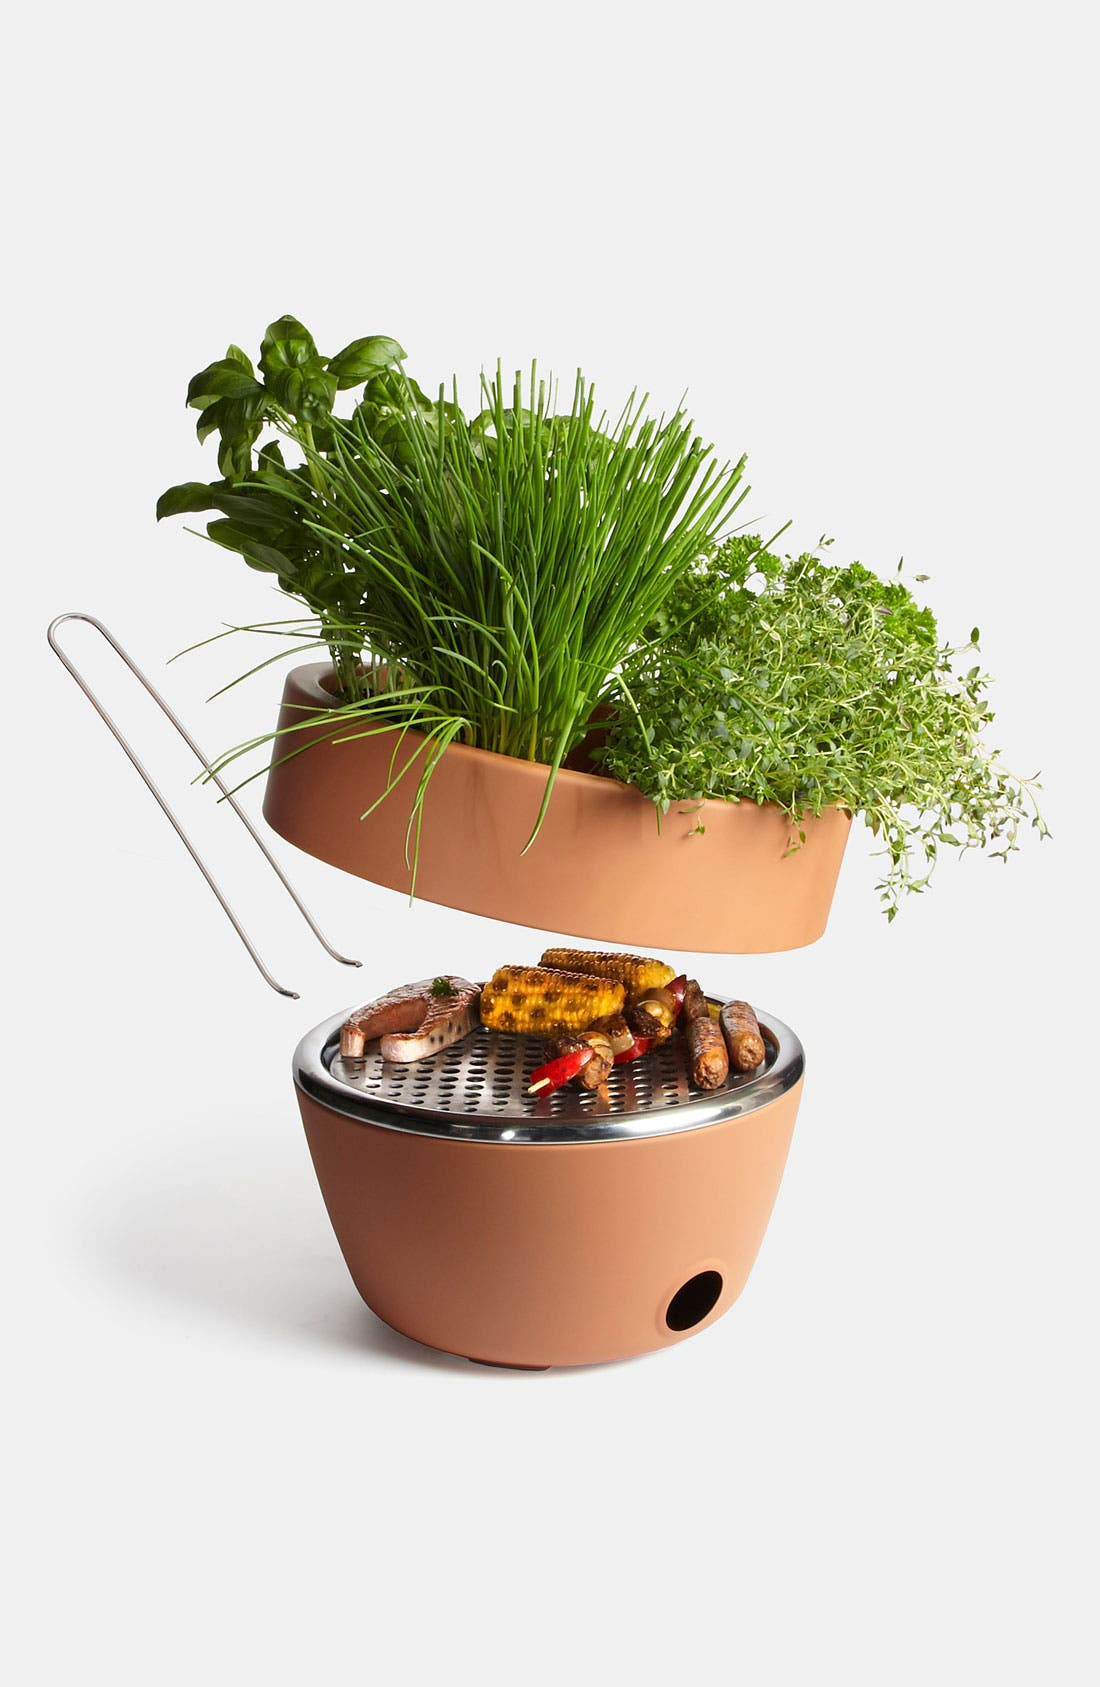 Alternate Image 1 Selected - black+blum Two-in-One Planter & Barbecue